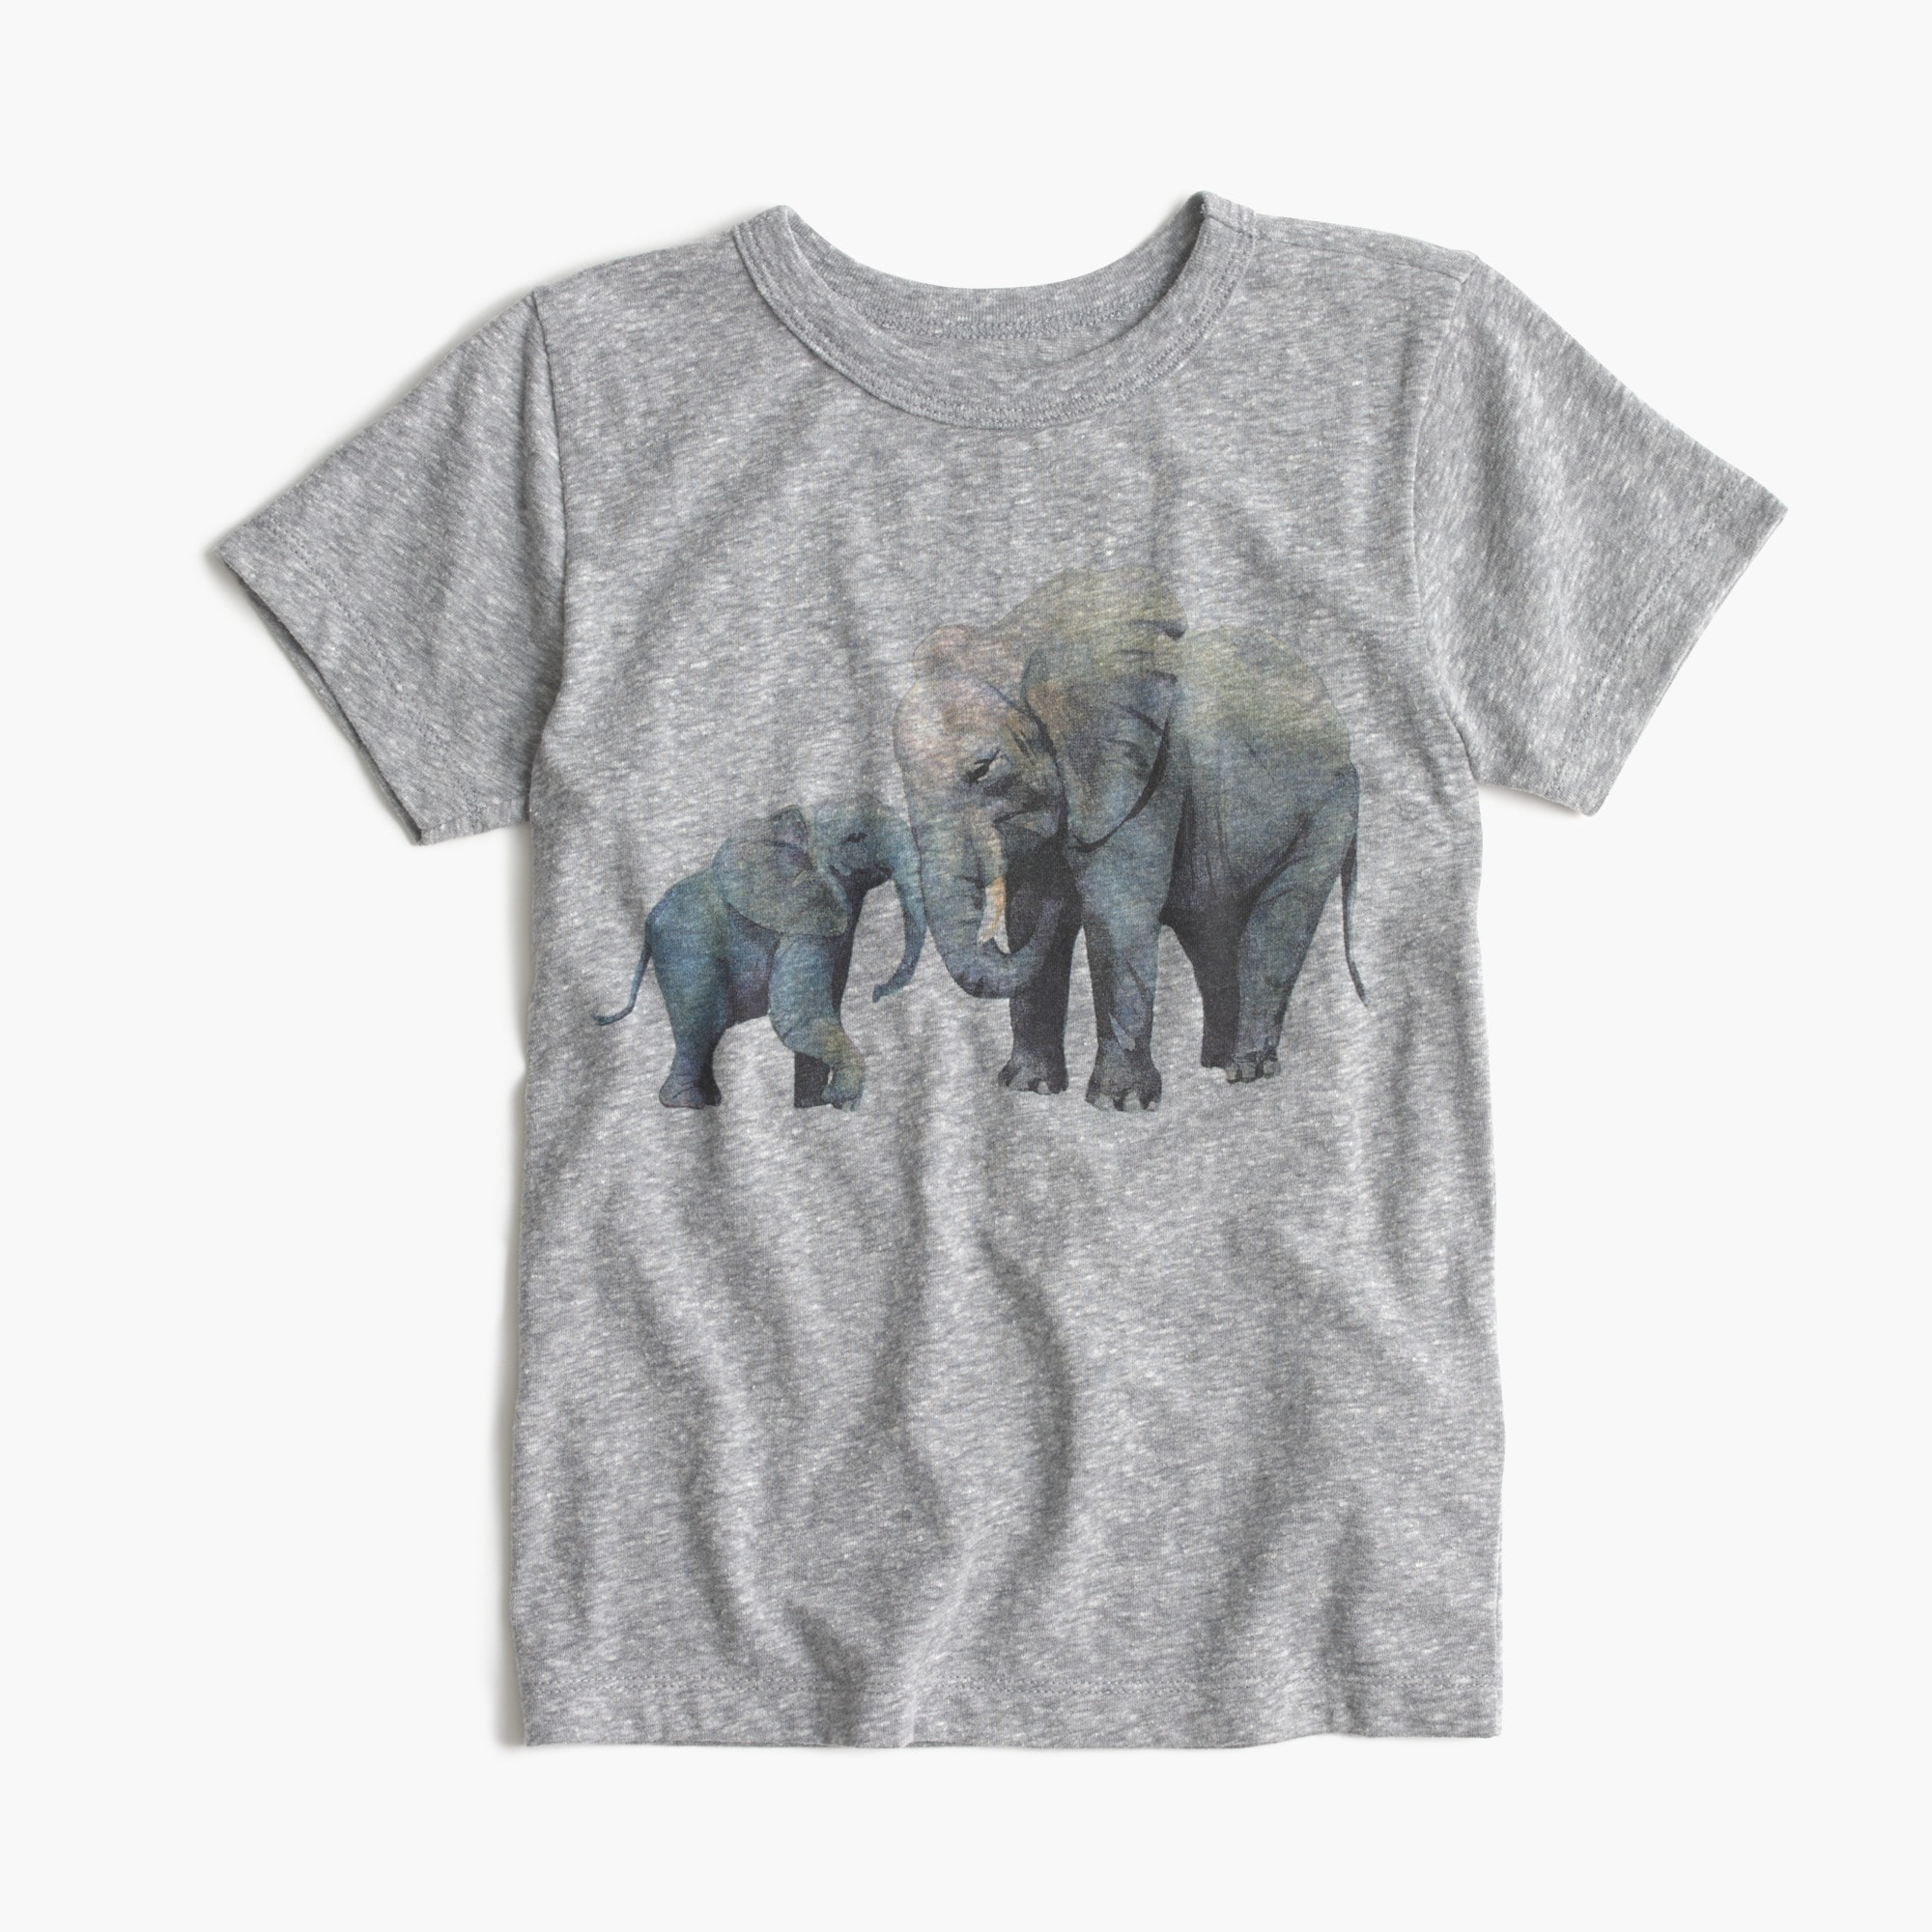 boys Kids' crewcuts for David Sheldrick Wildlife Trust elephant T-shirt